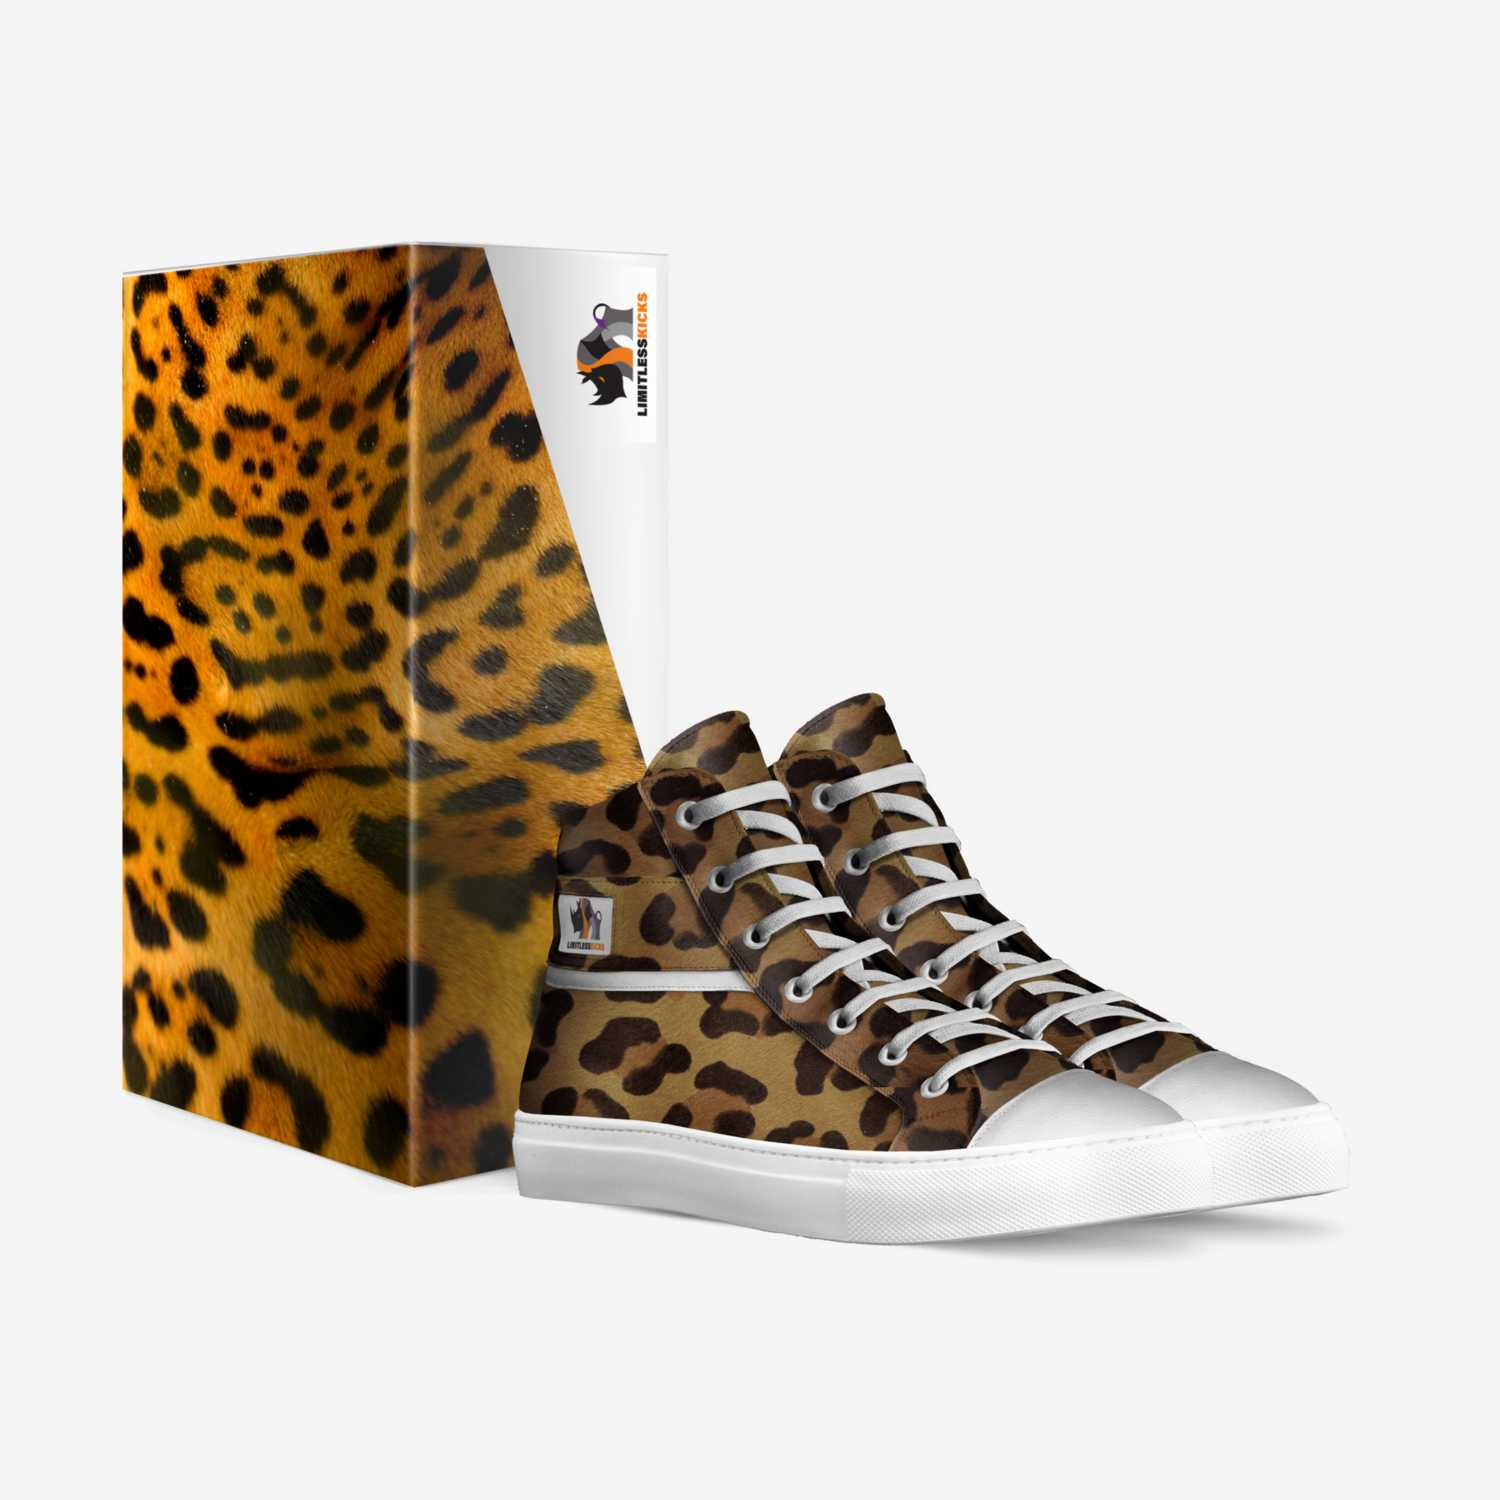 Limitless Animal custom made in Italy shoes by John Marchese | Box view